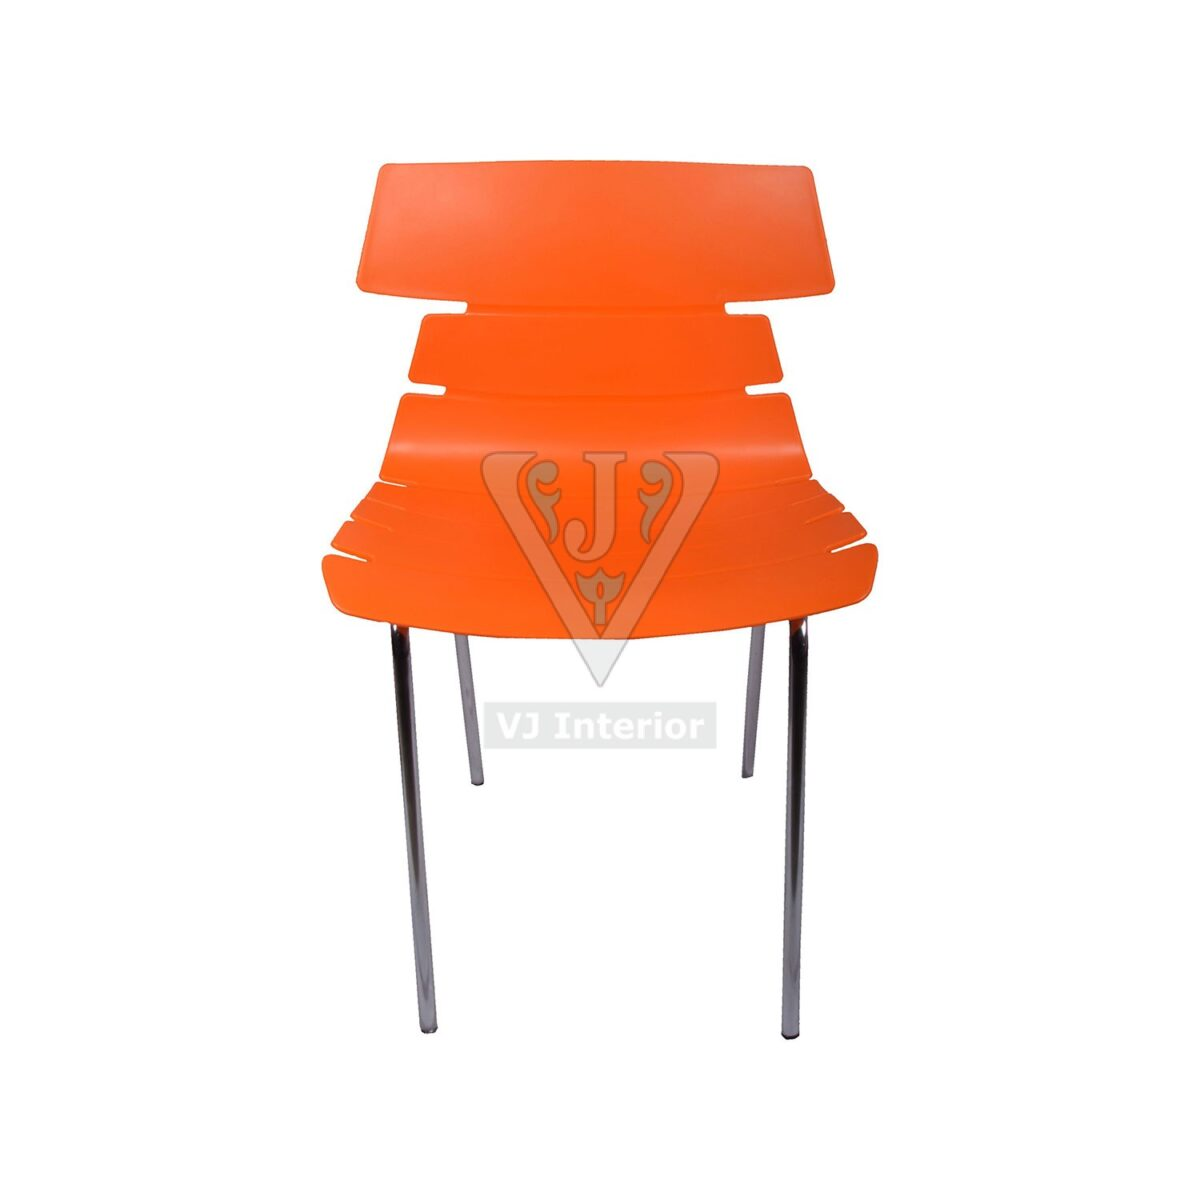 THE ALISAR STEEL FRAME PLASTIC CHAIR ORANGE